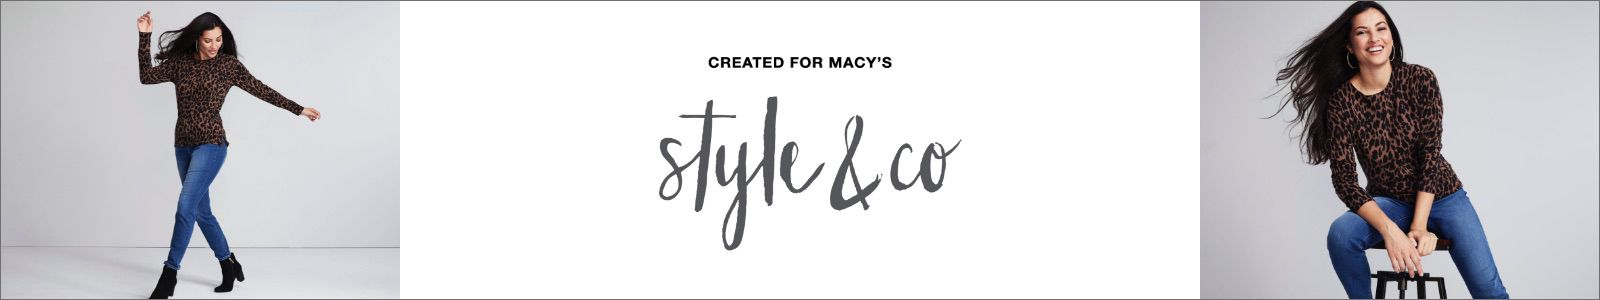 Created For Macy's, Style and Co